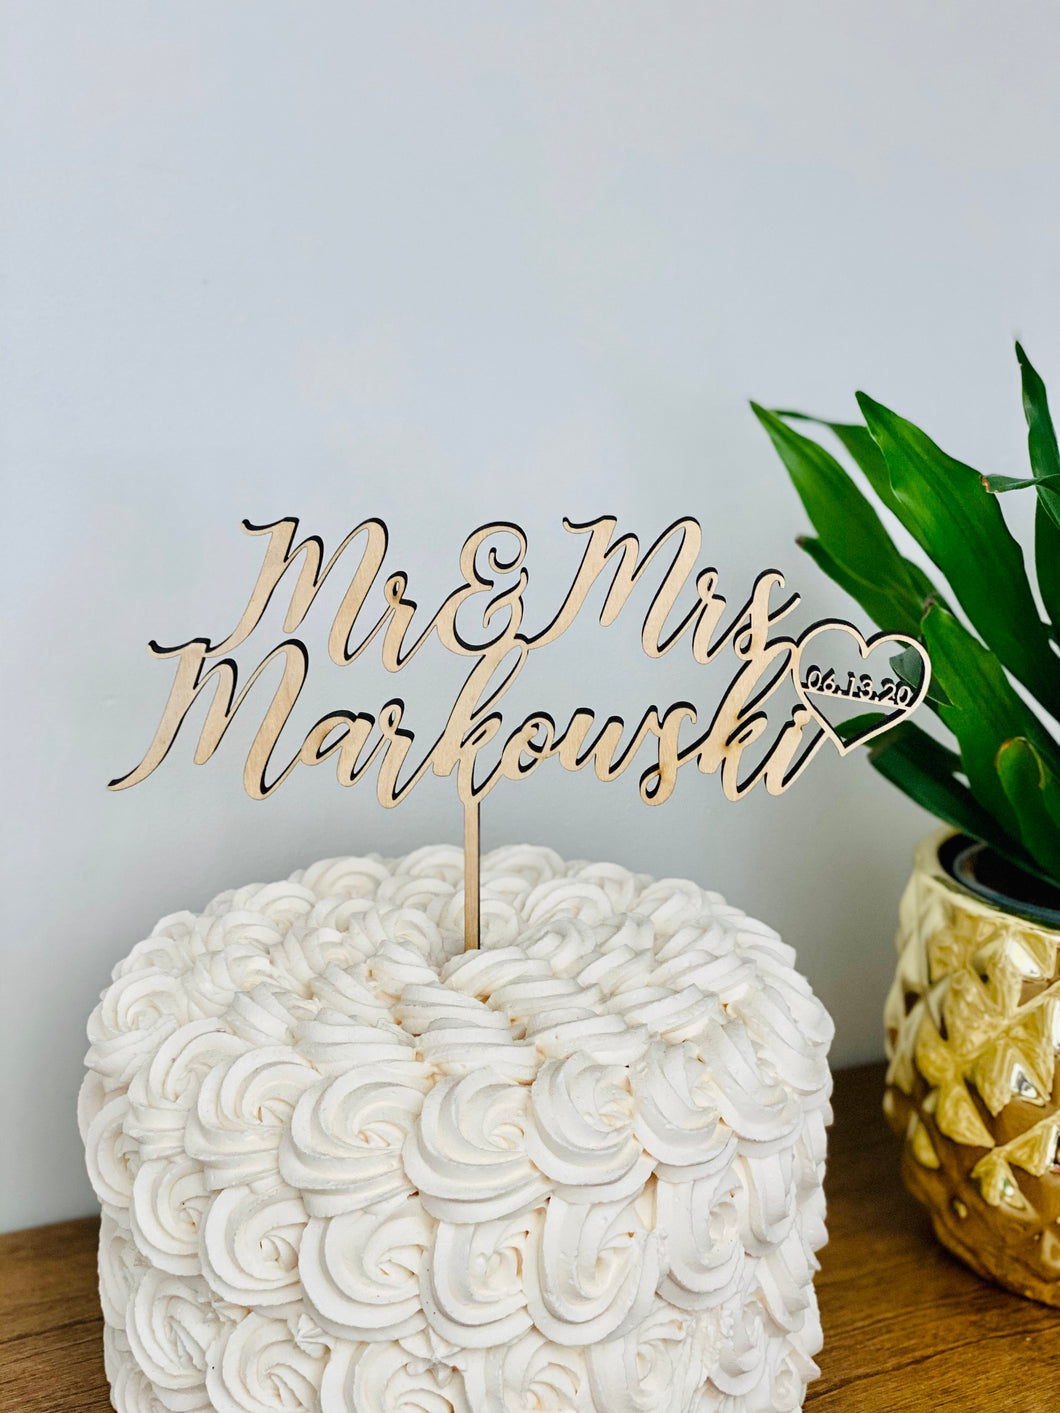 Personalized Mr & Mrs Name Date Cake Topper, 6